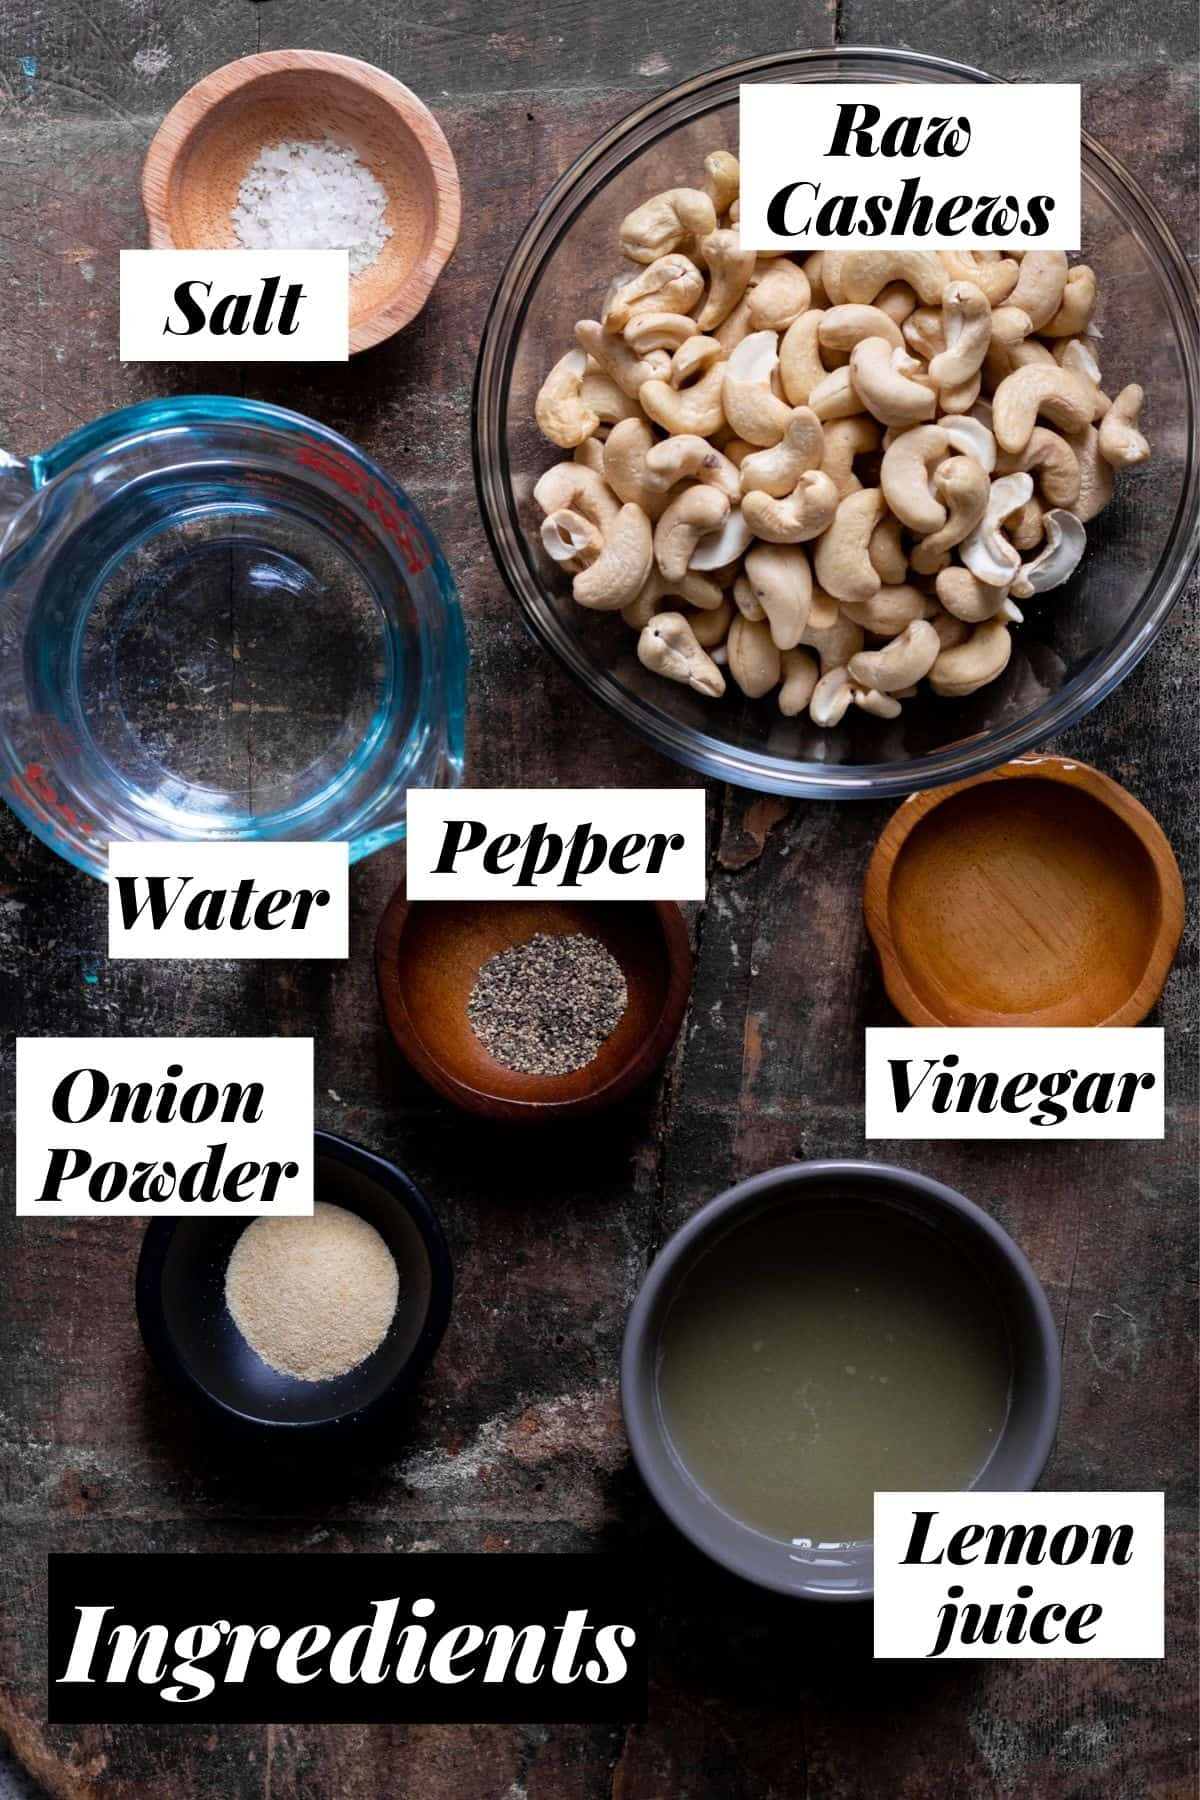 Ingredients measured into bowls for cashew sour cream recipe.